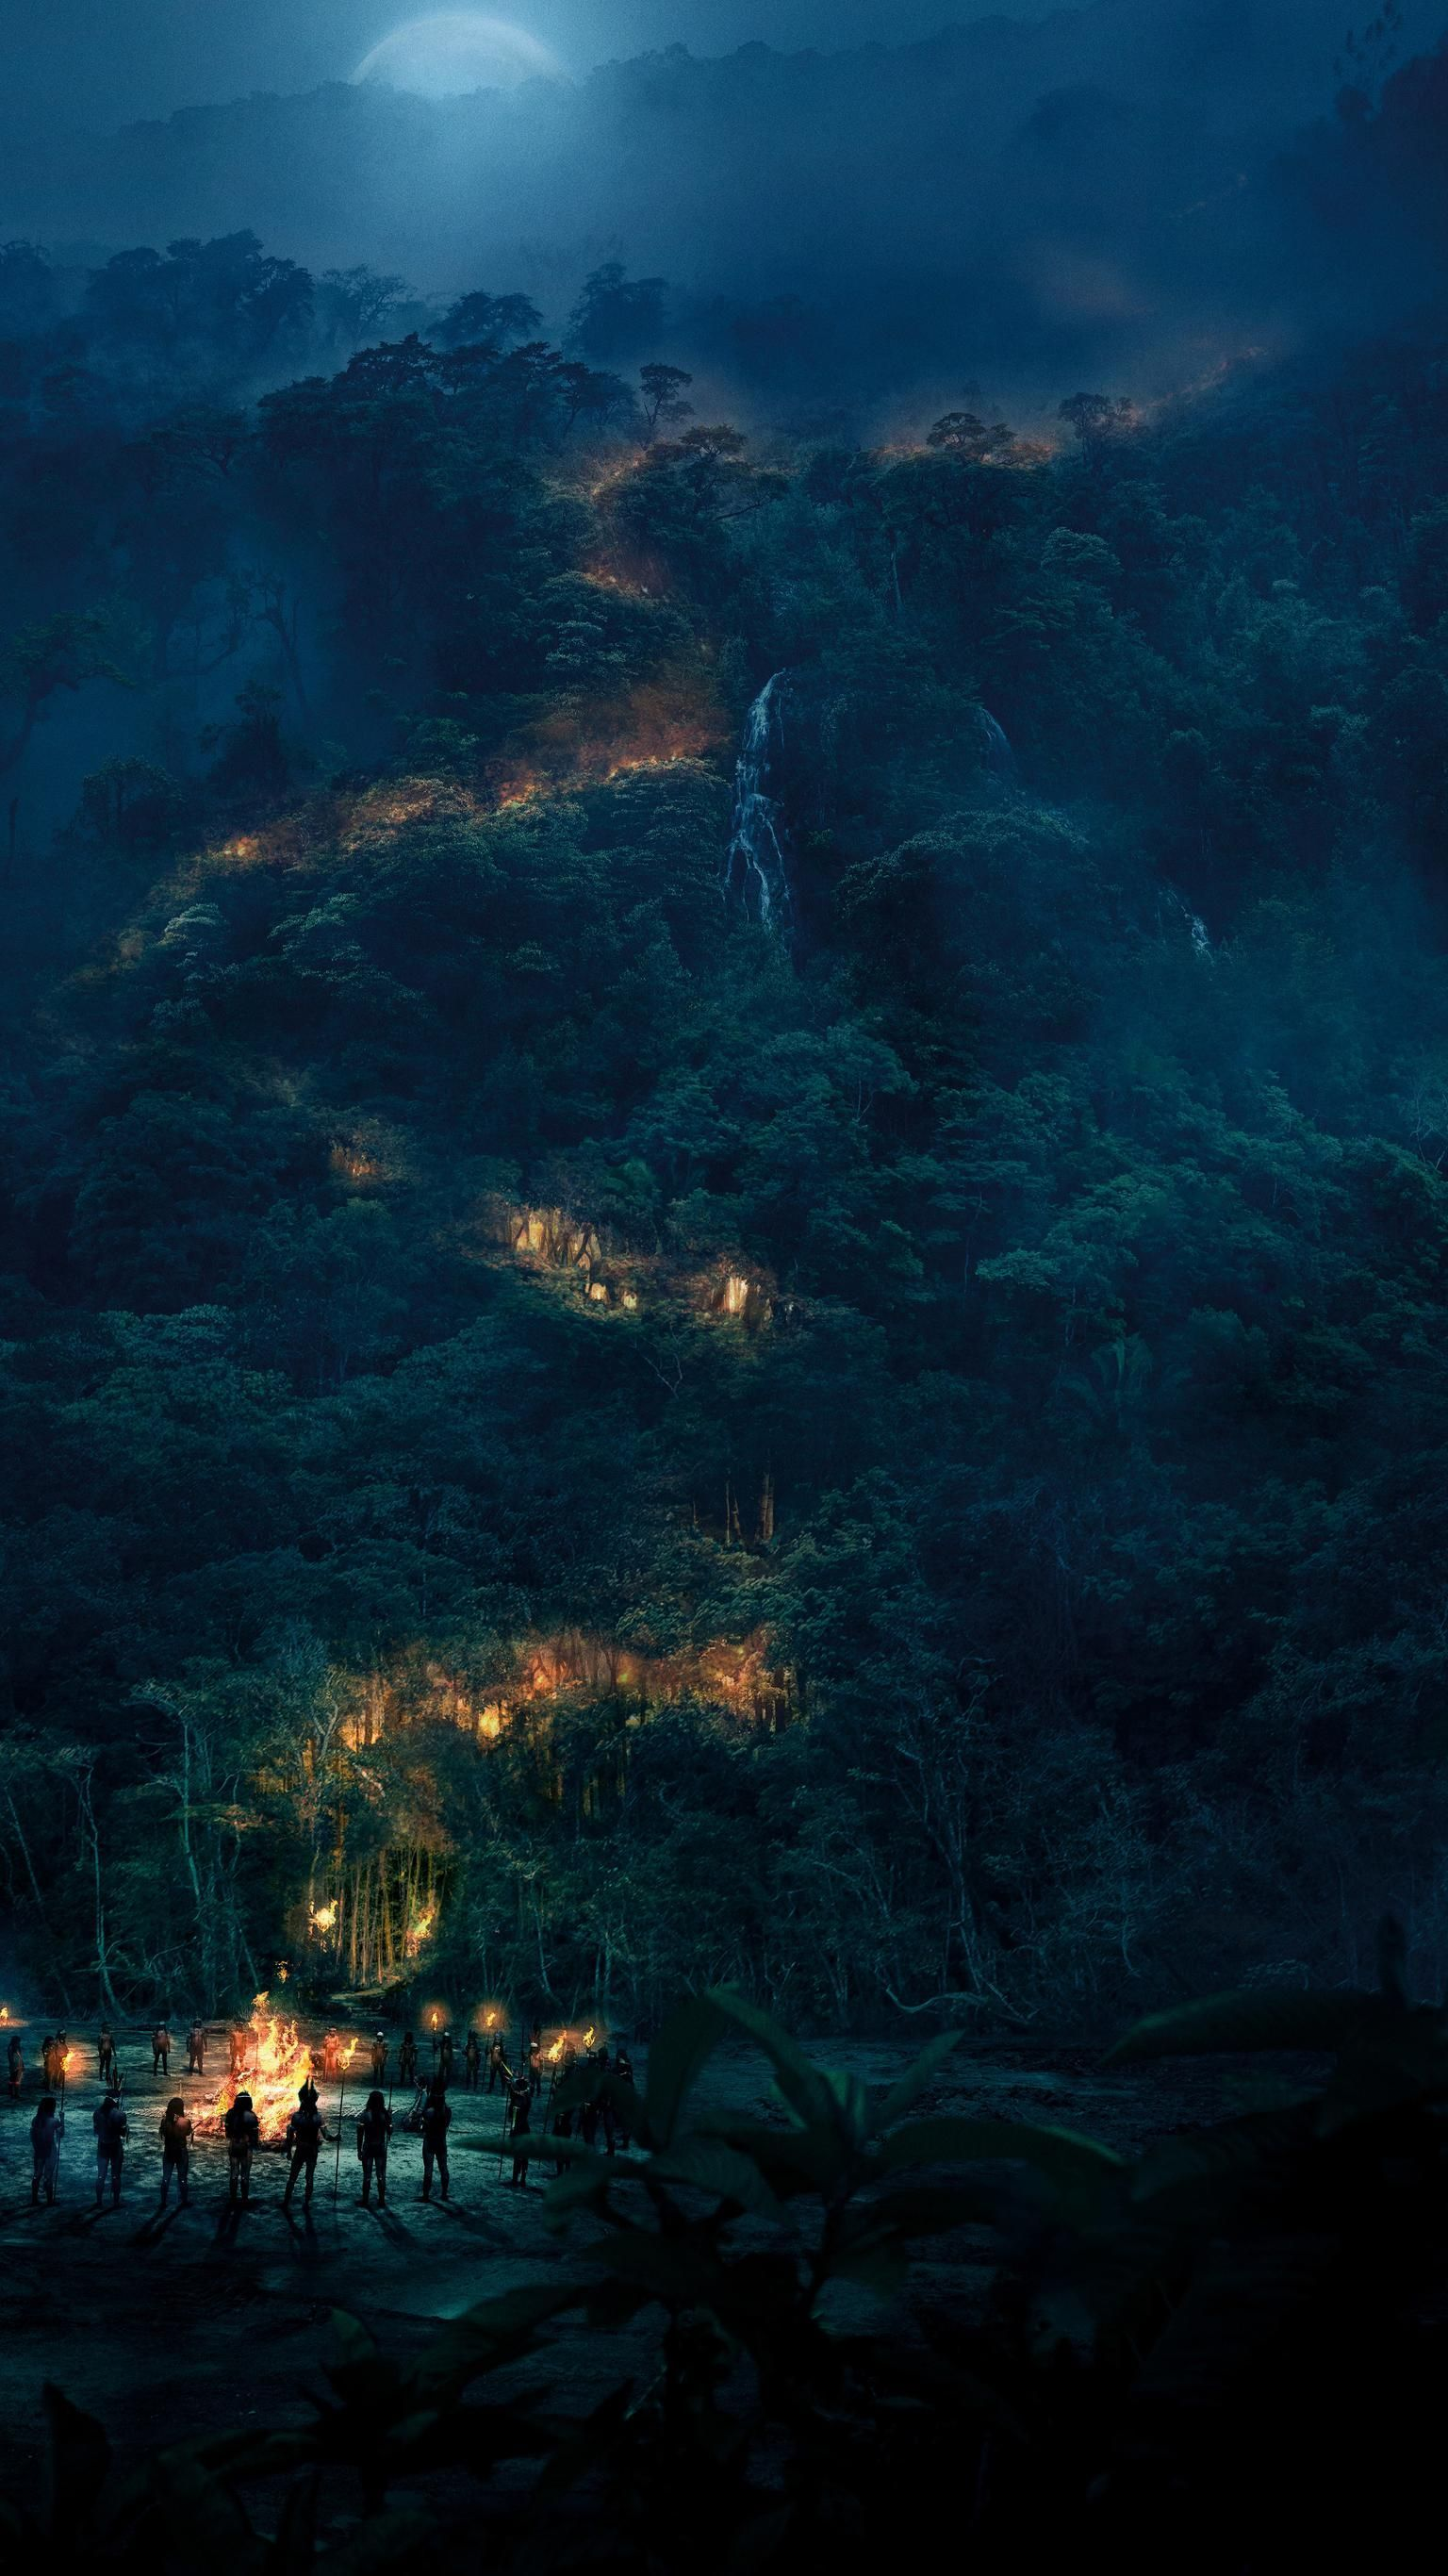 20 Wallpaper Macbook Nature Dark With Images Lost City Of Z Lost City Phone Wallpaper